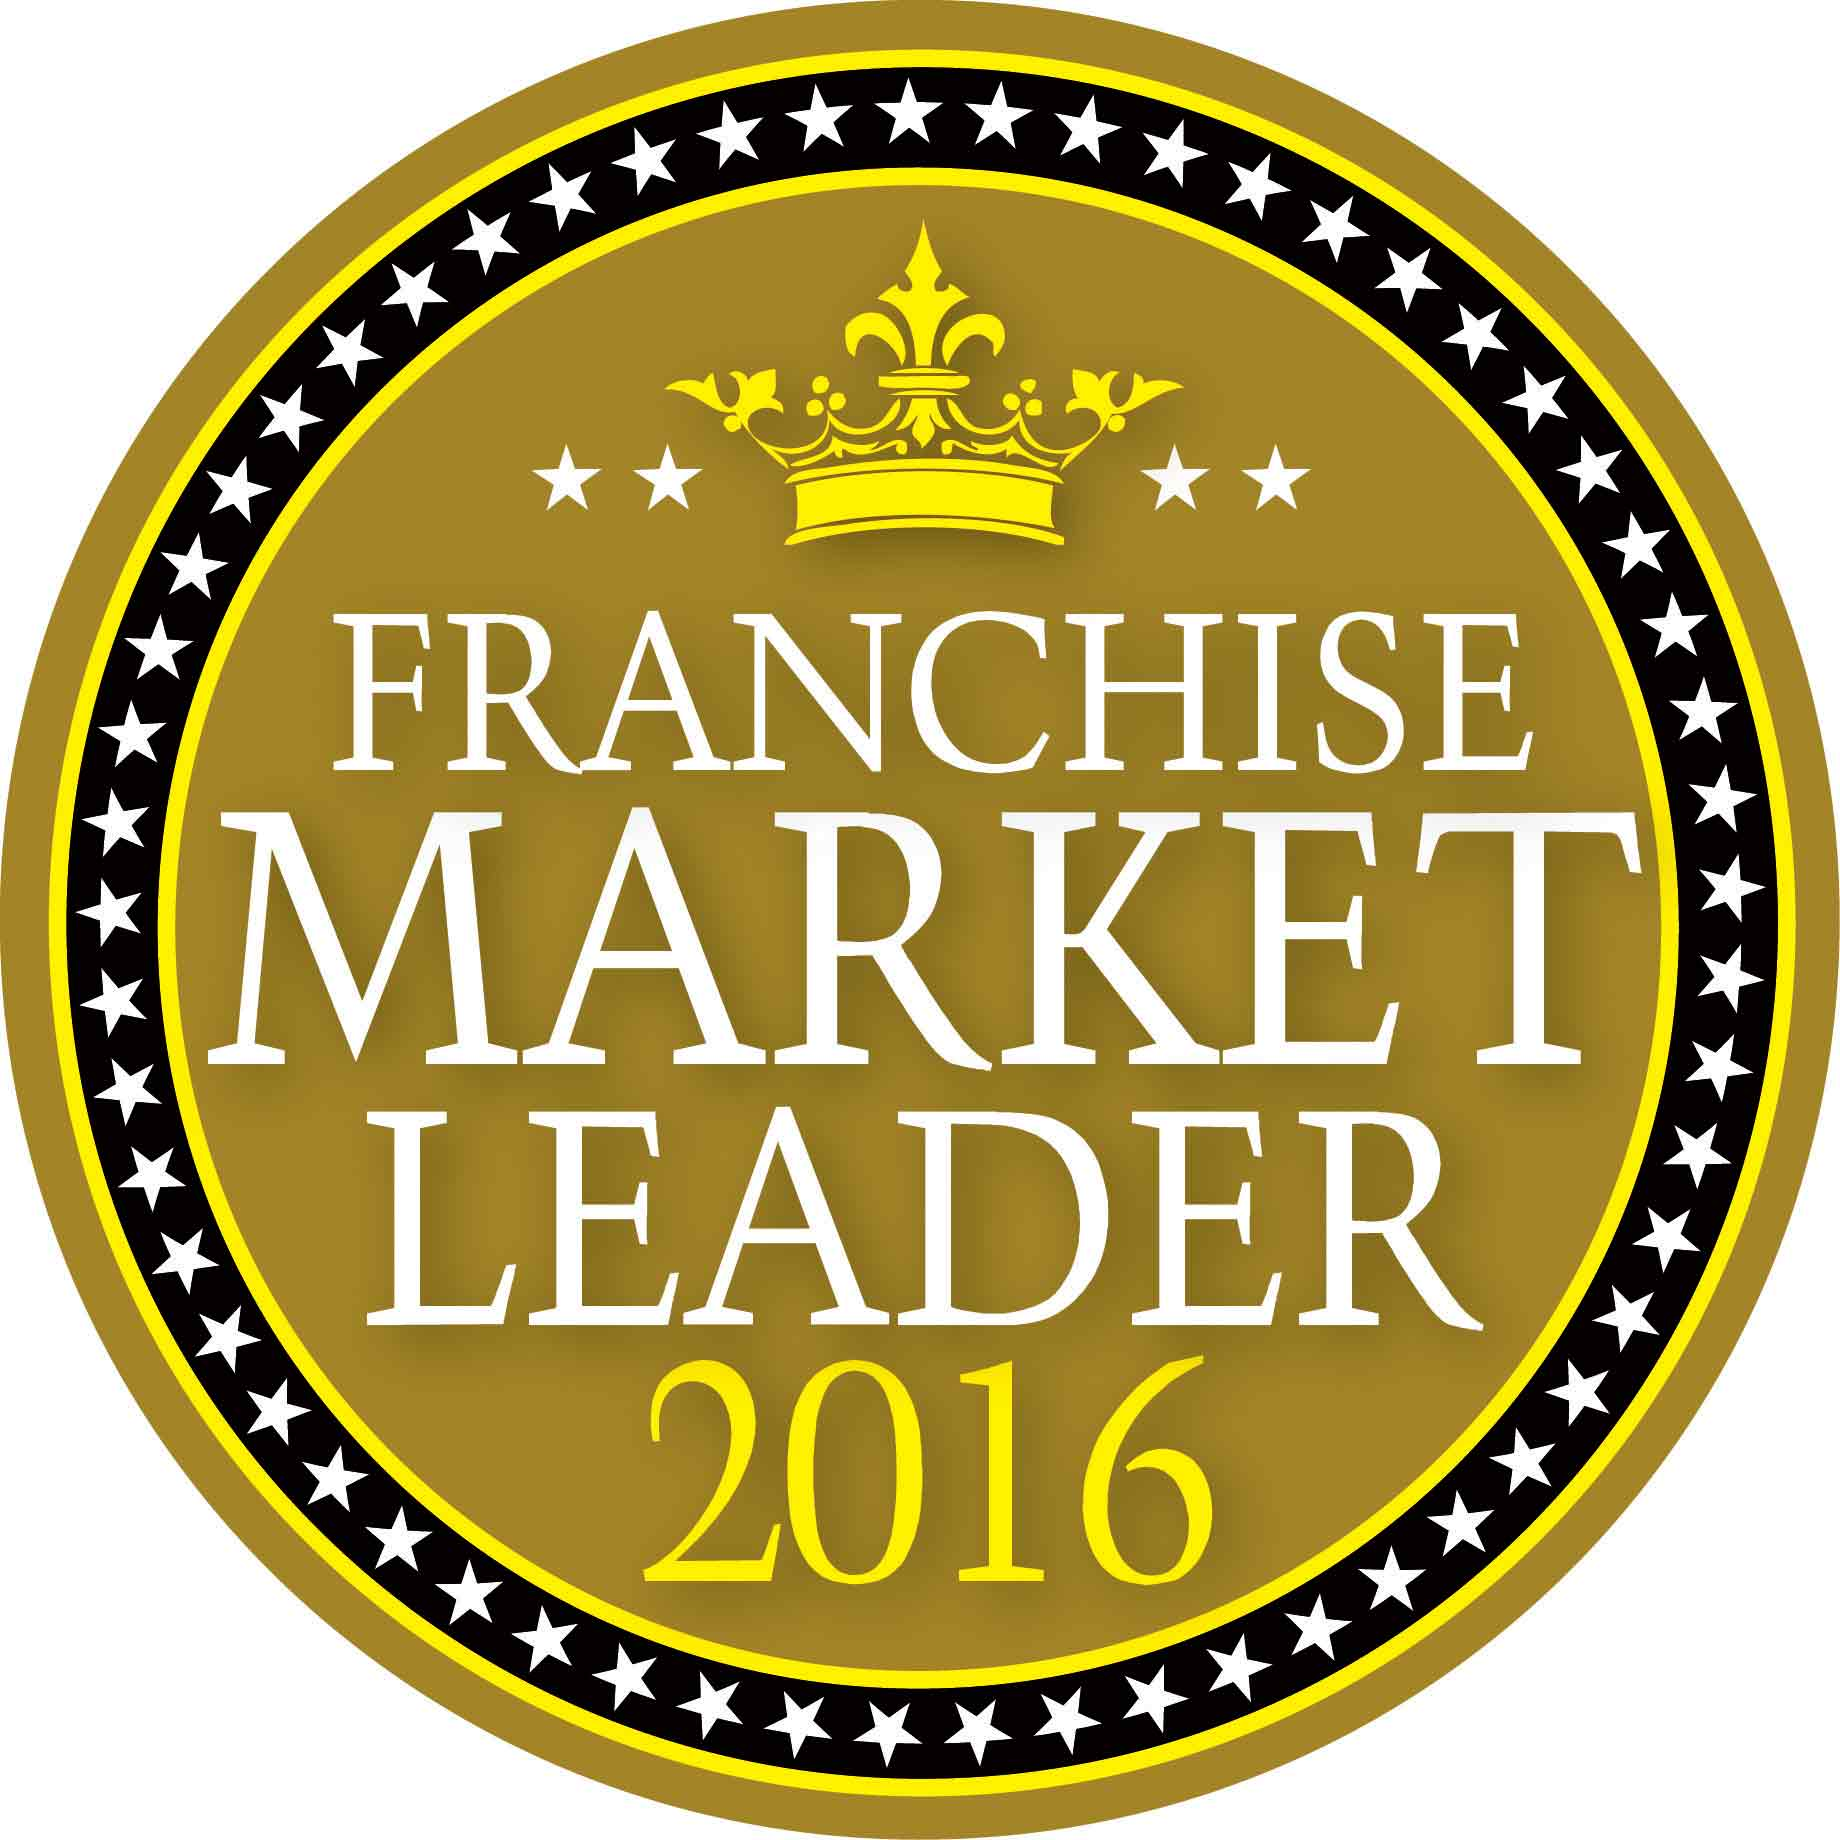 FRANCHISE MARKET LEADER 2016